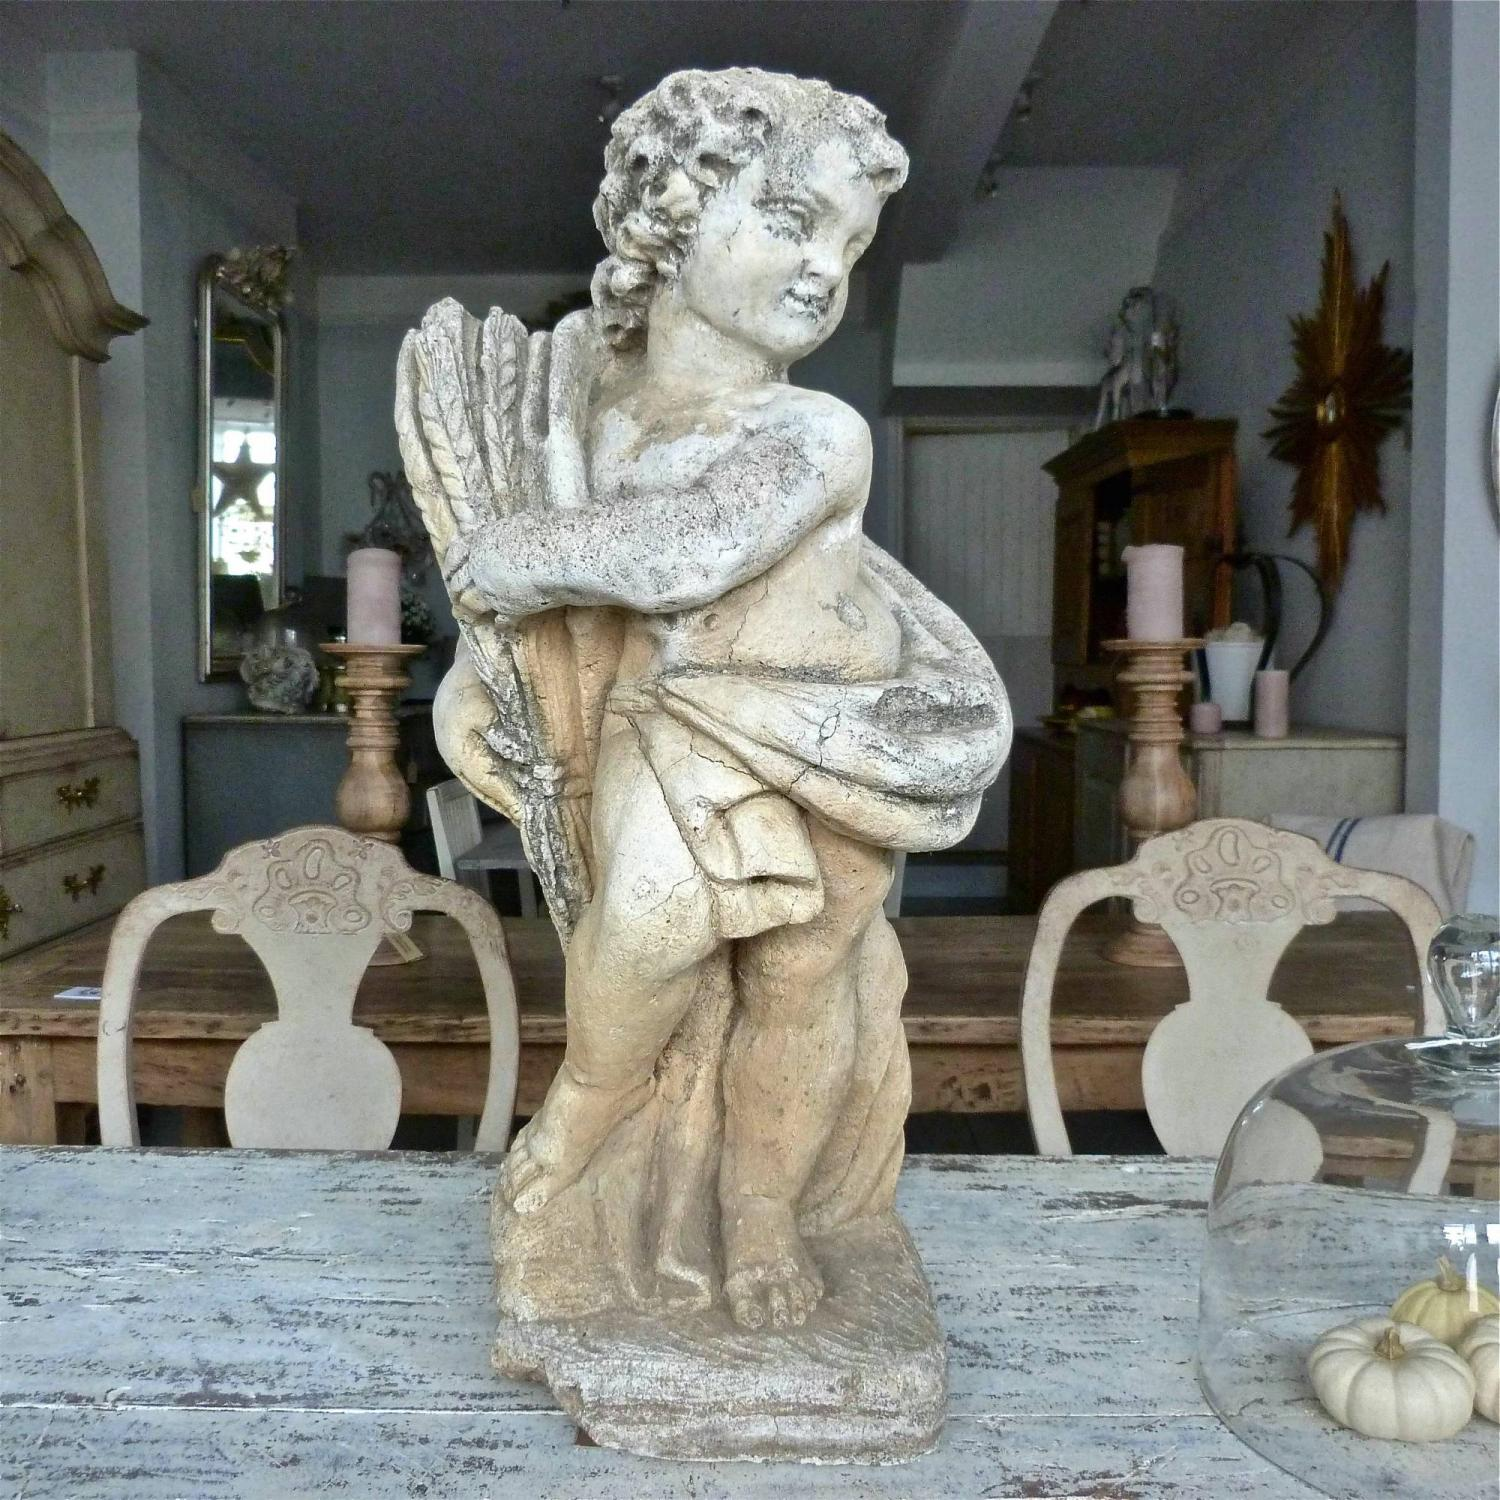 RARE 19TH CENTURY CARVED STONE PUTTO STATUE